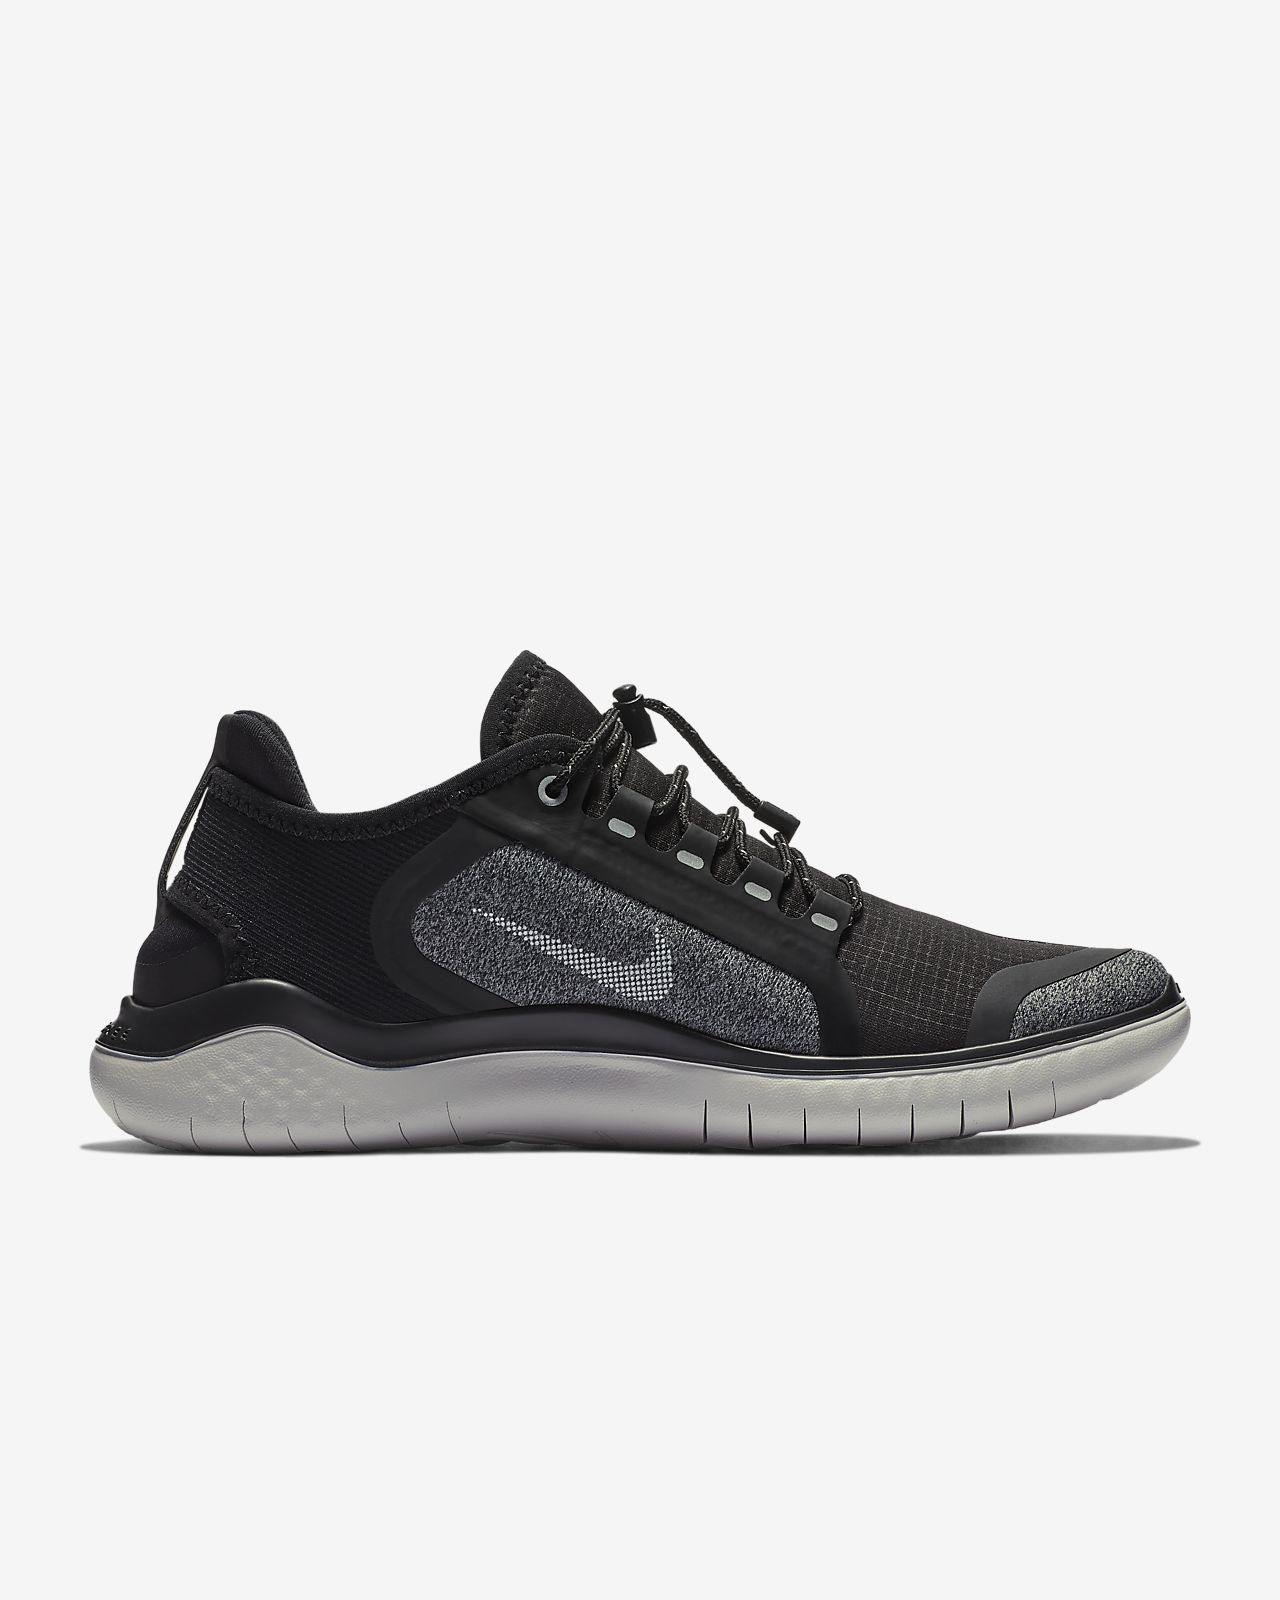 91e1845e046 Nike Free RN 2018 Shield Water-Repellent Women s Running Shoe. Nike ...